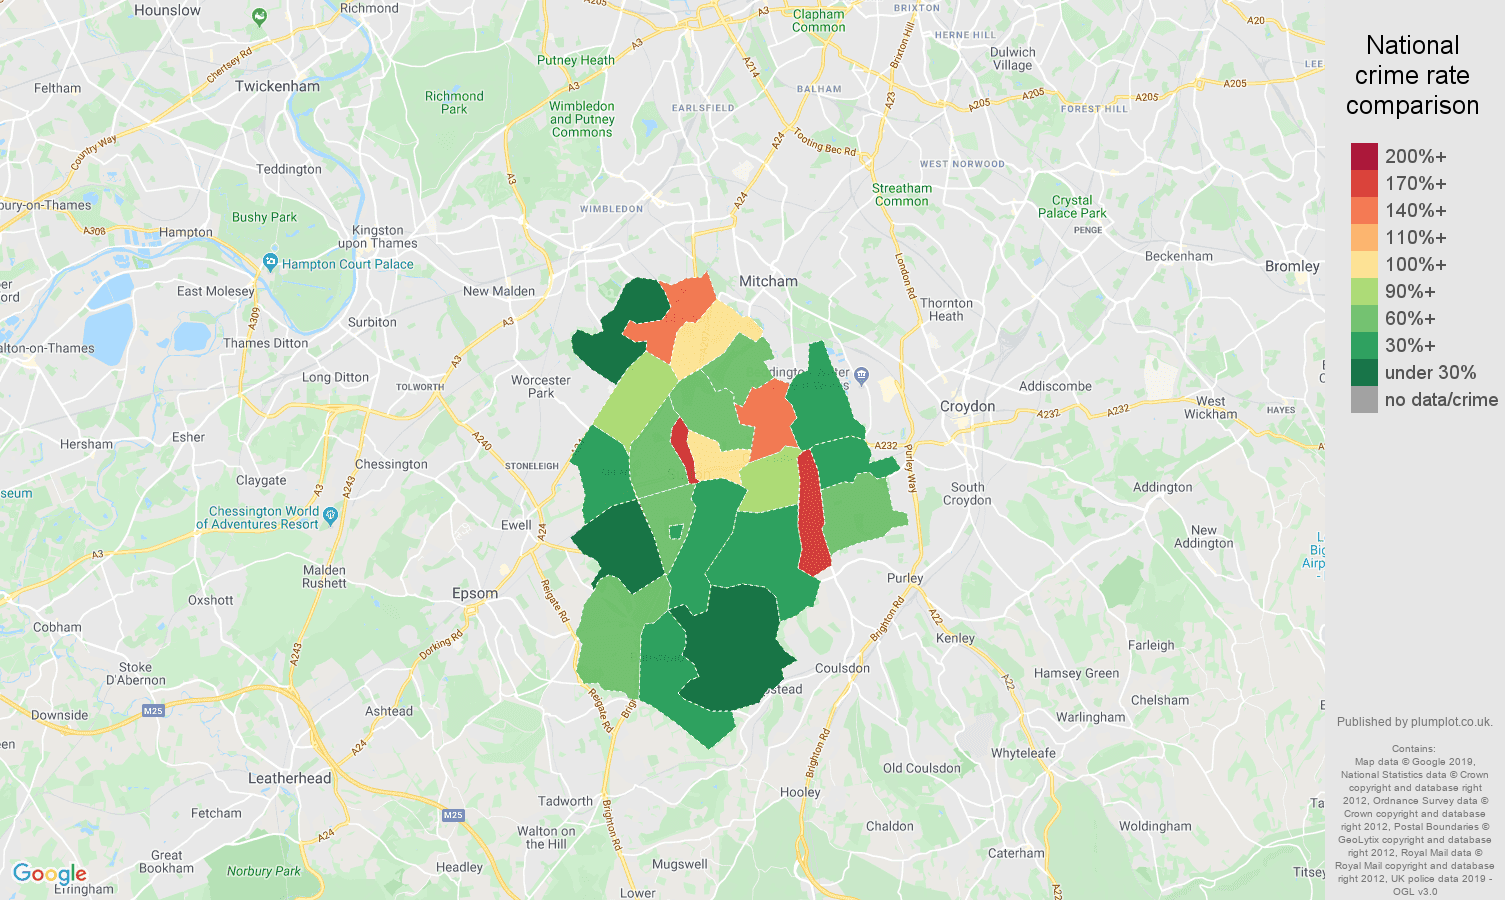 Sutton other theft crime rate comparison map